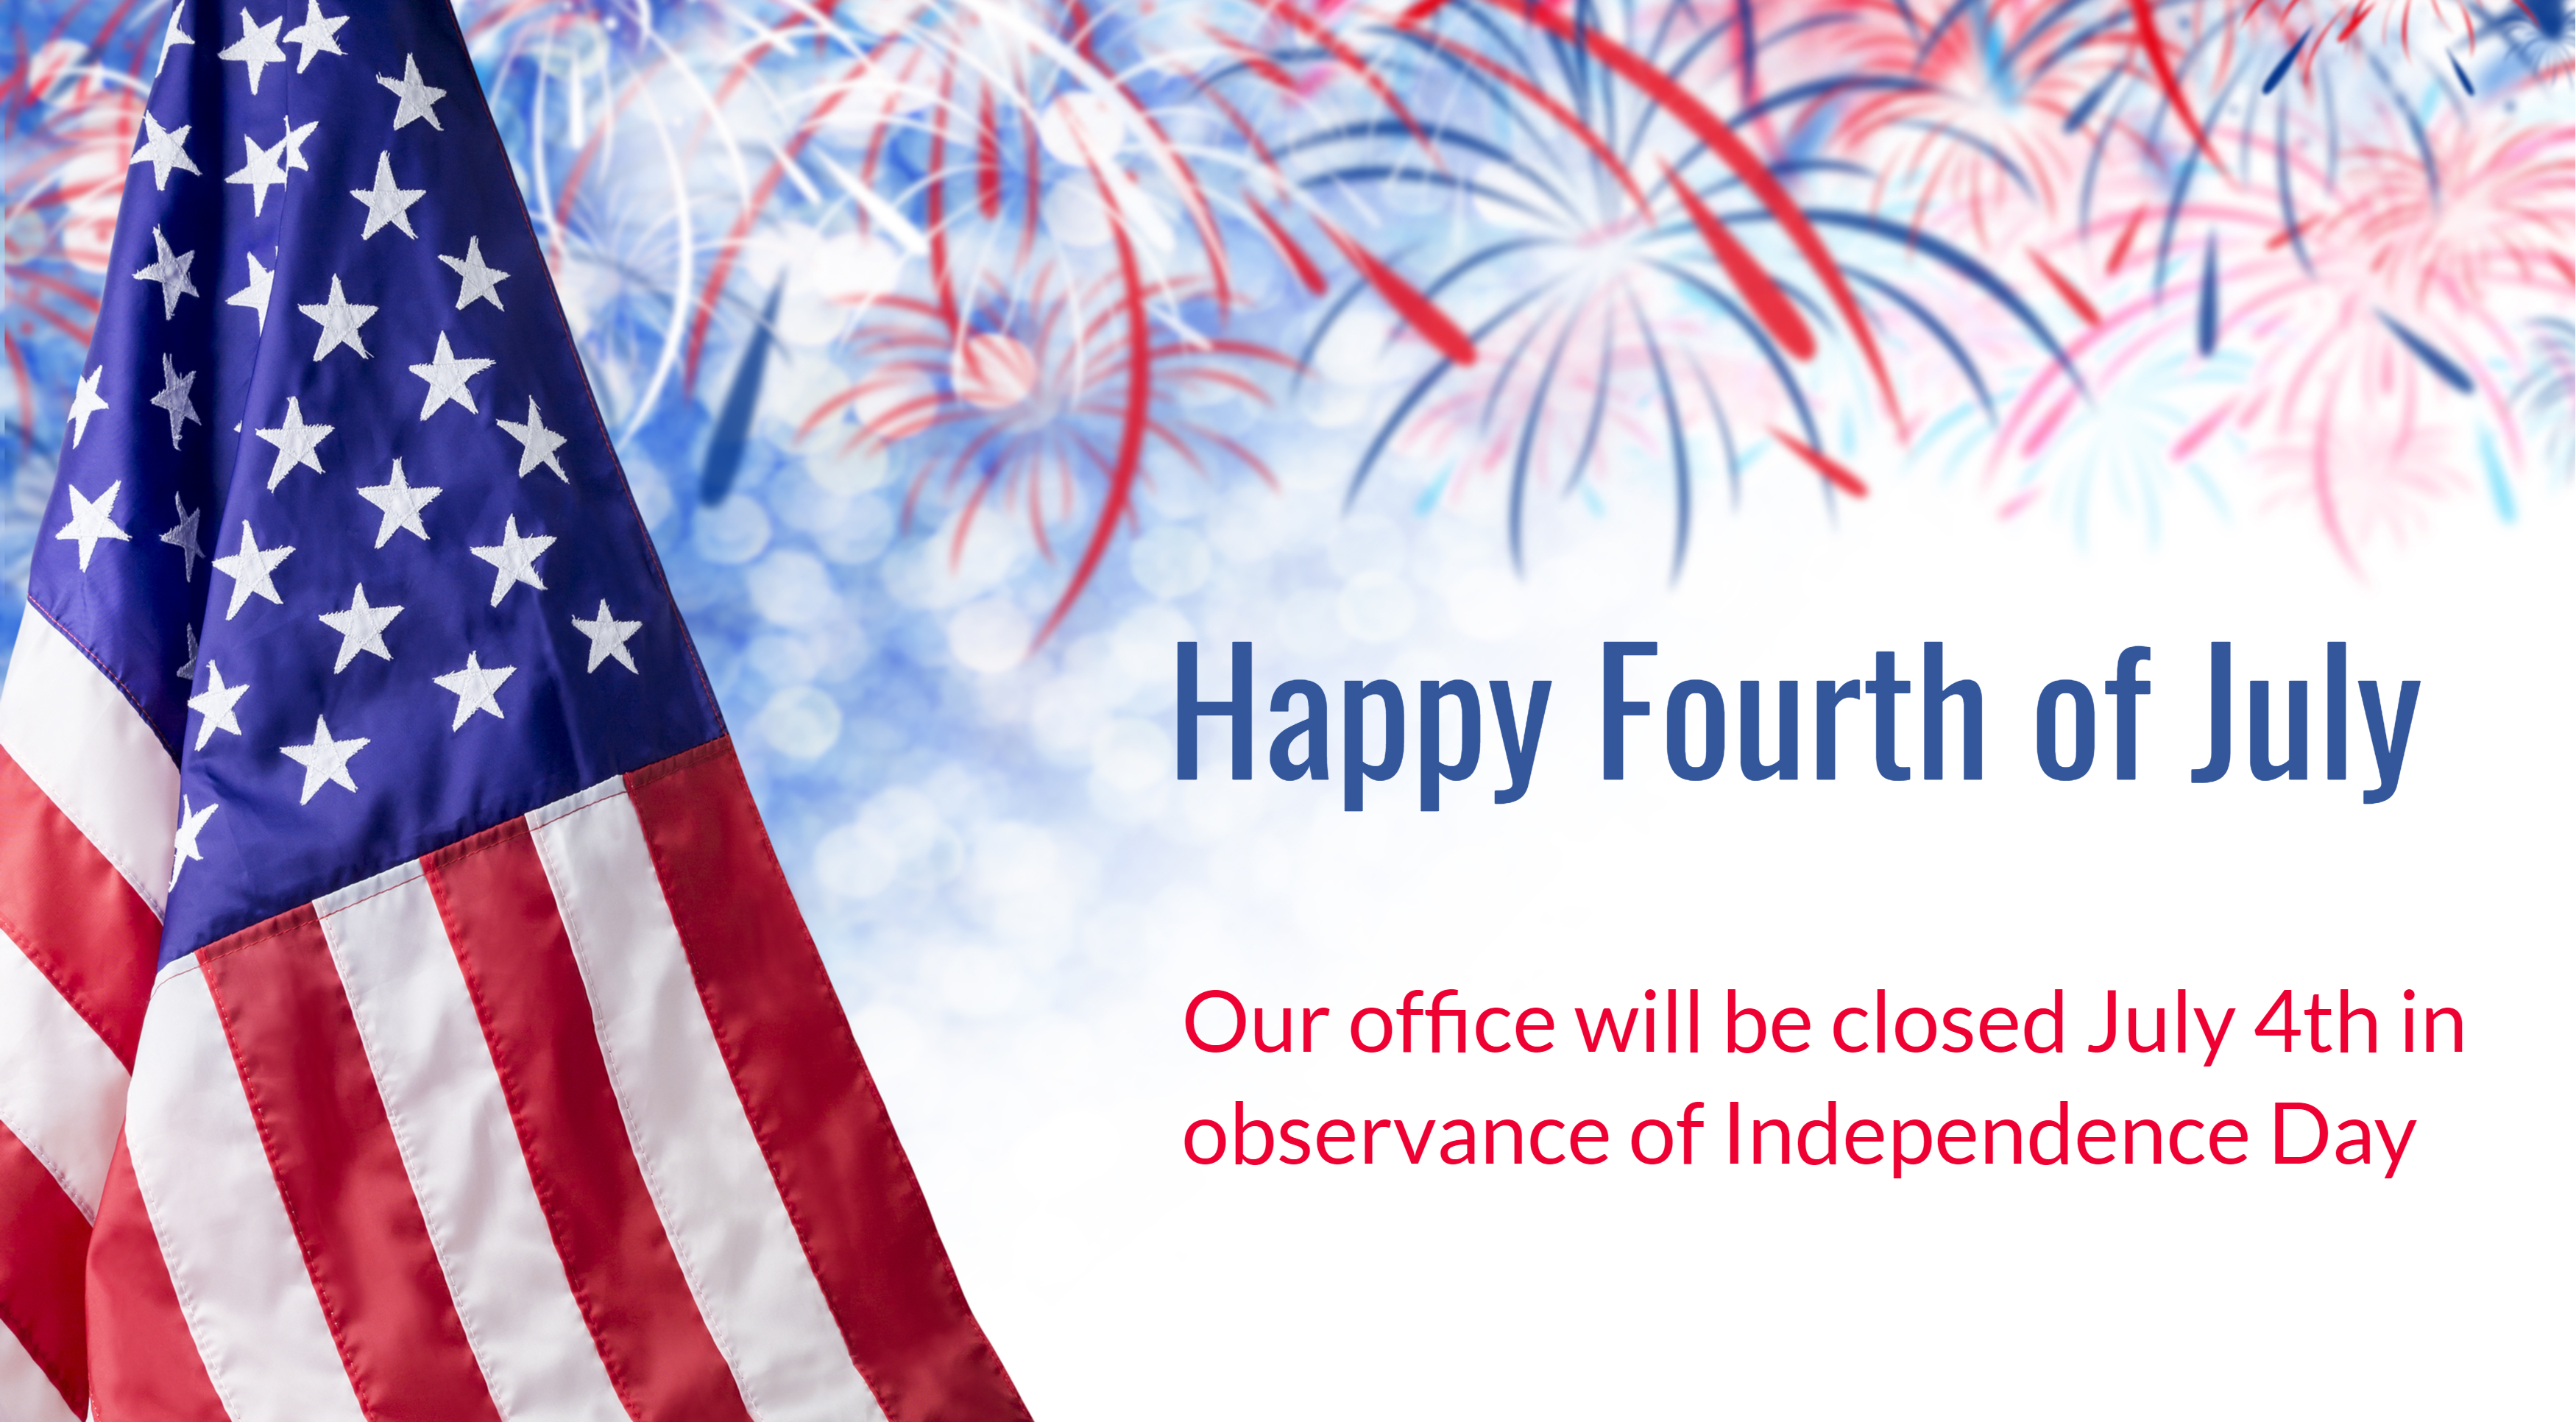 4th of july closing sign